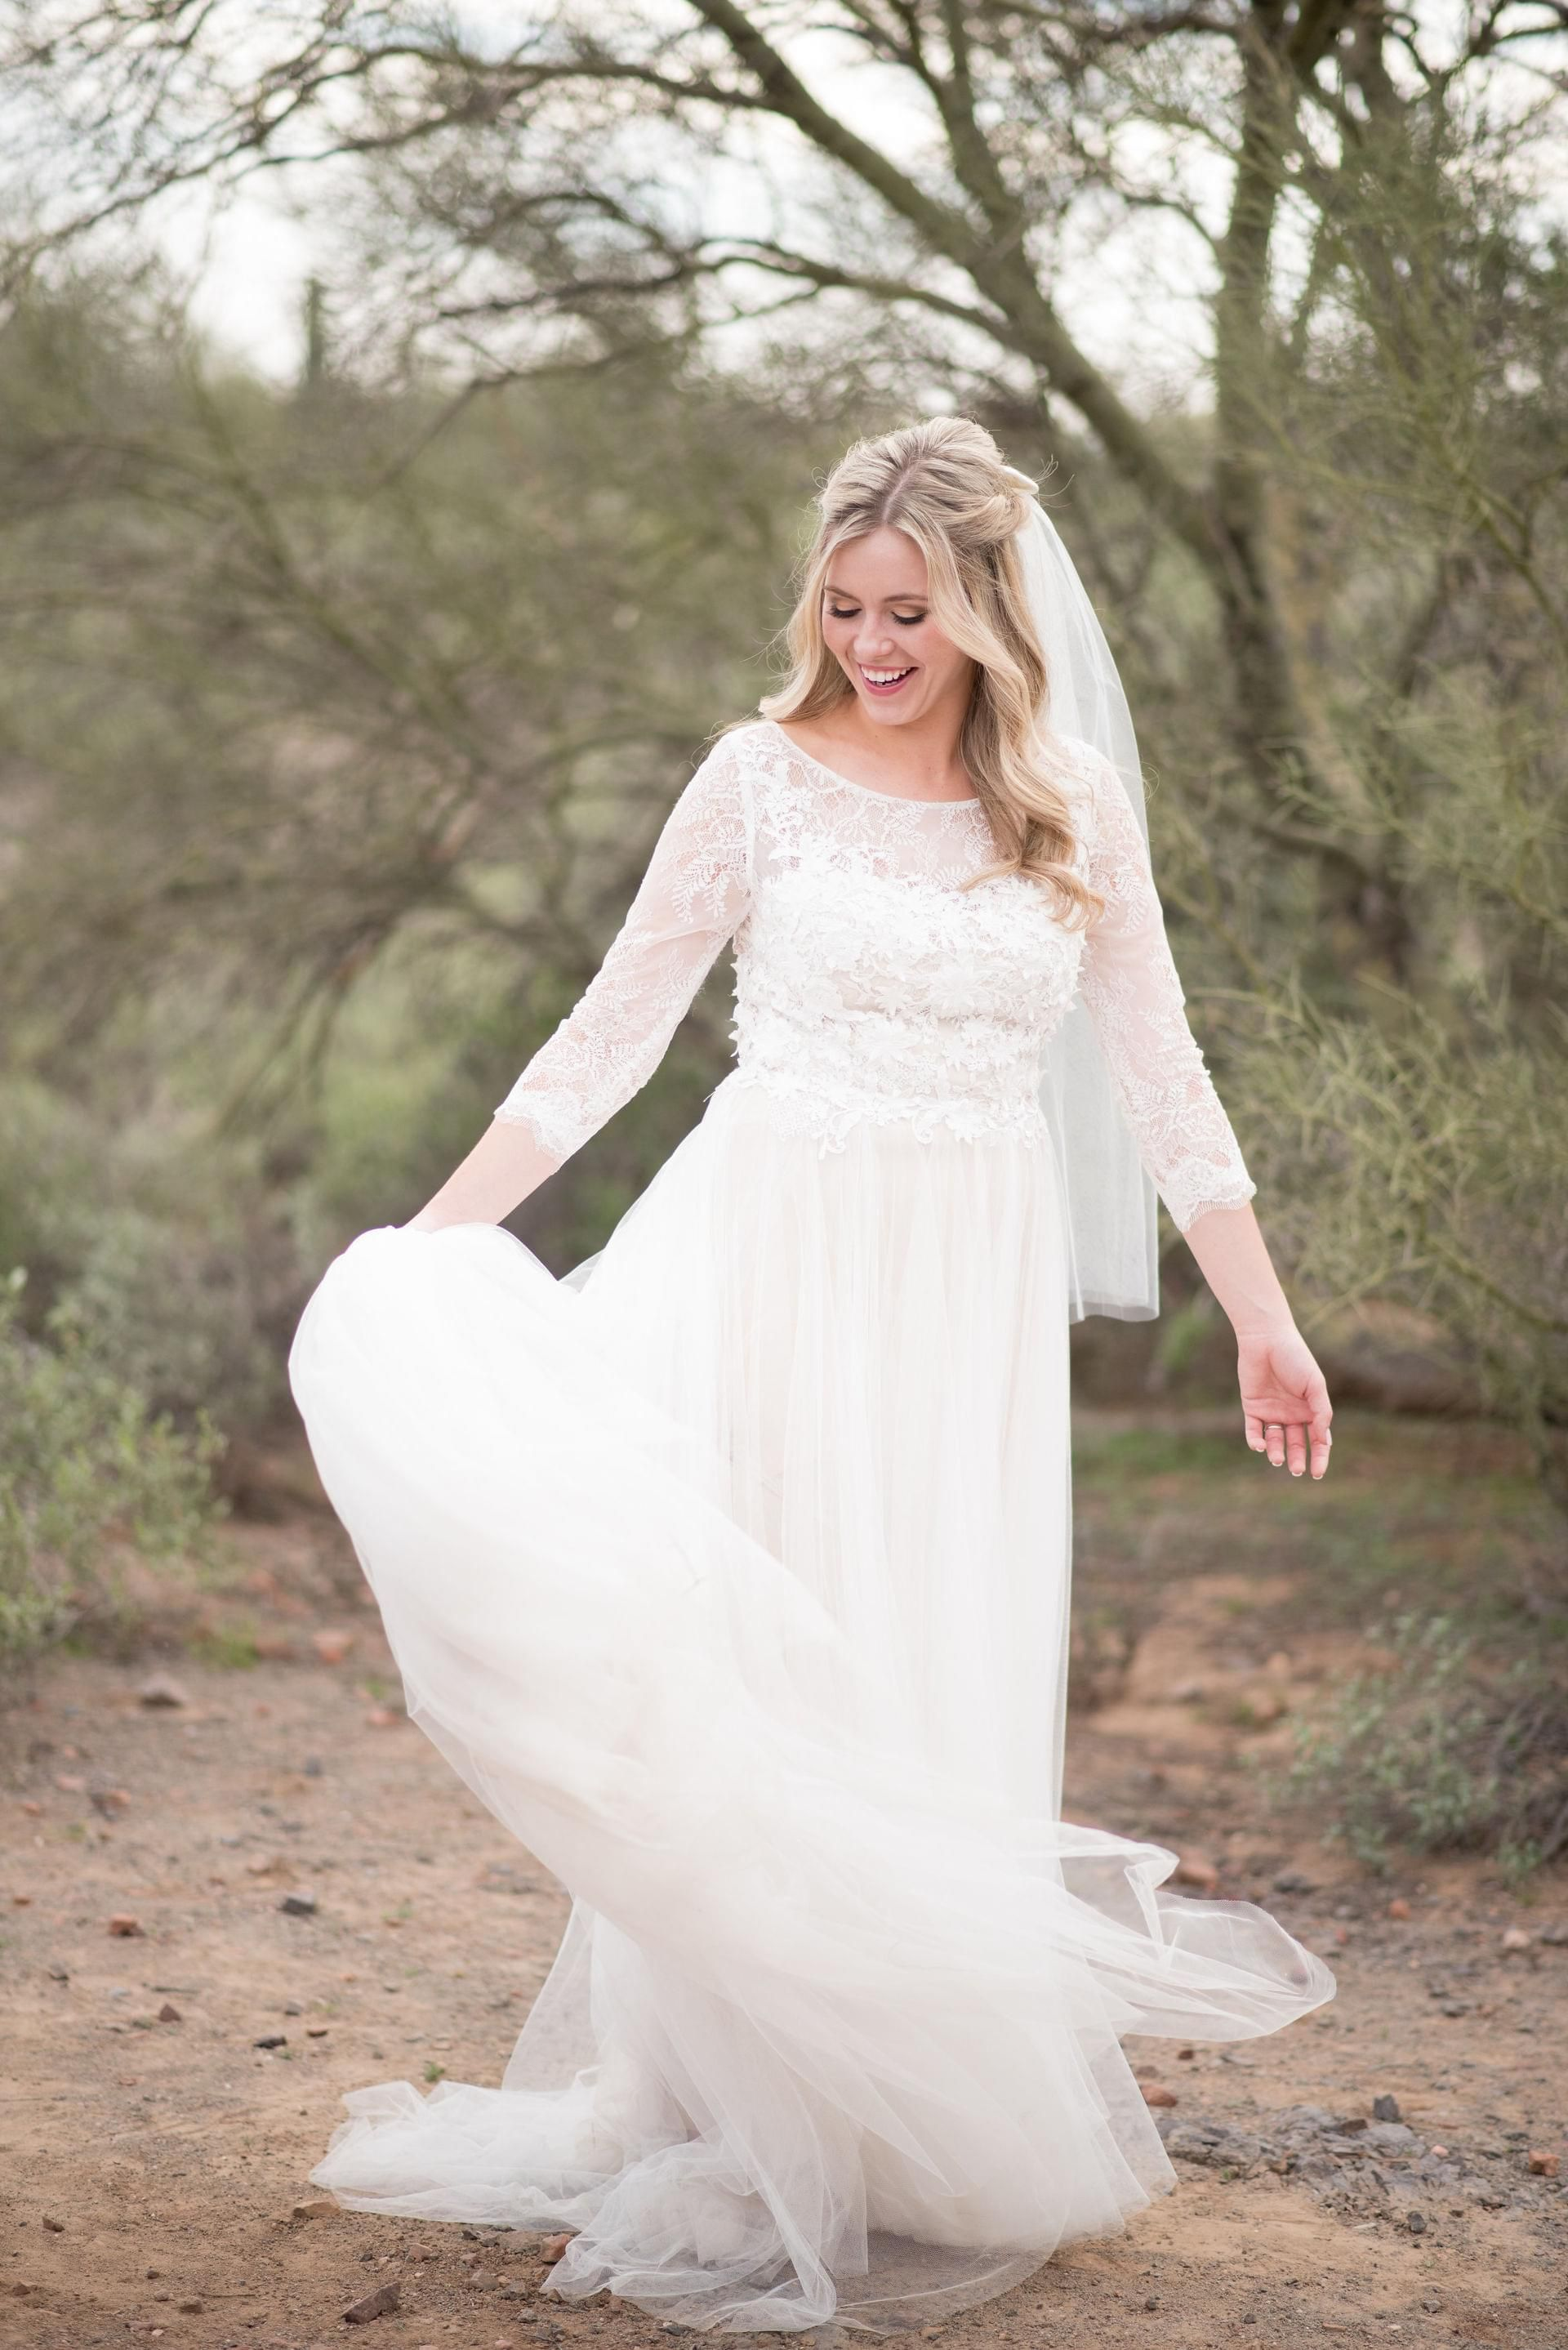 The Smarter Way to Wed | Pinterest | Organza wedding dresses ...